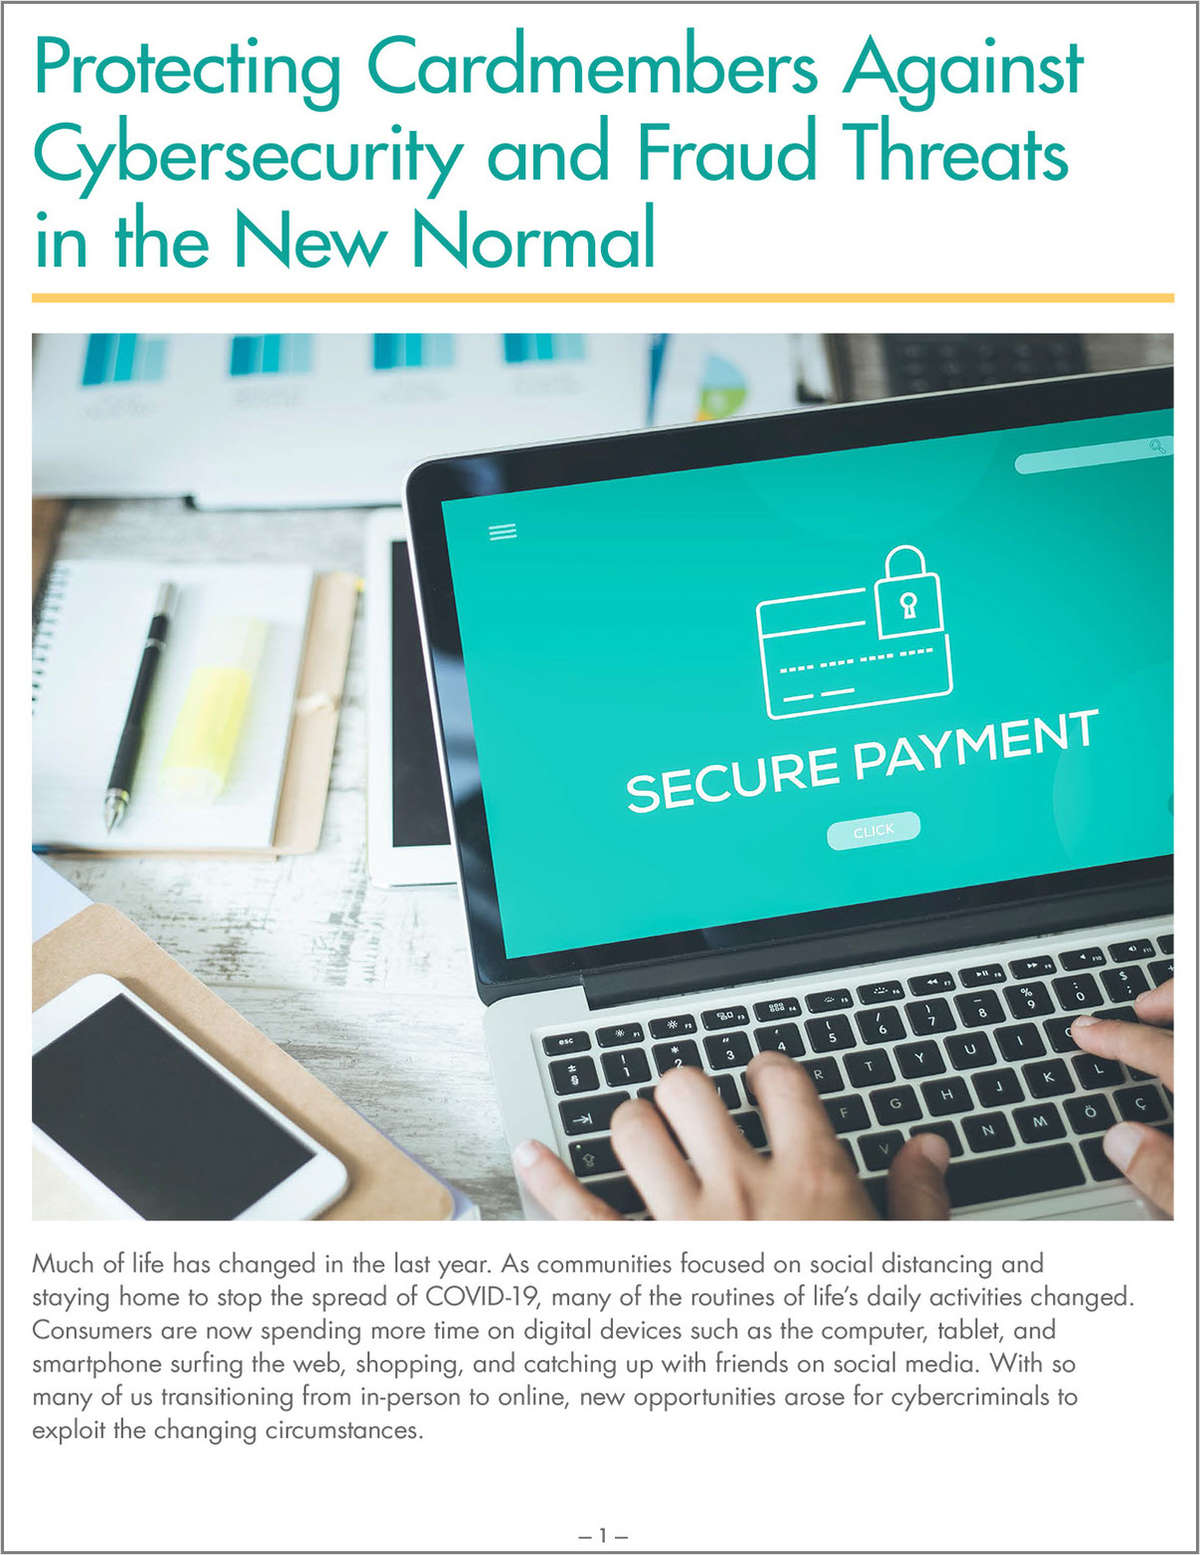 Protect Your Cardmembers Against Cybersecurity and Fraud Threats